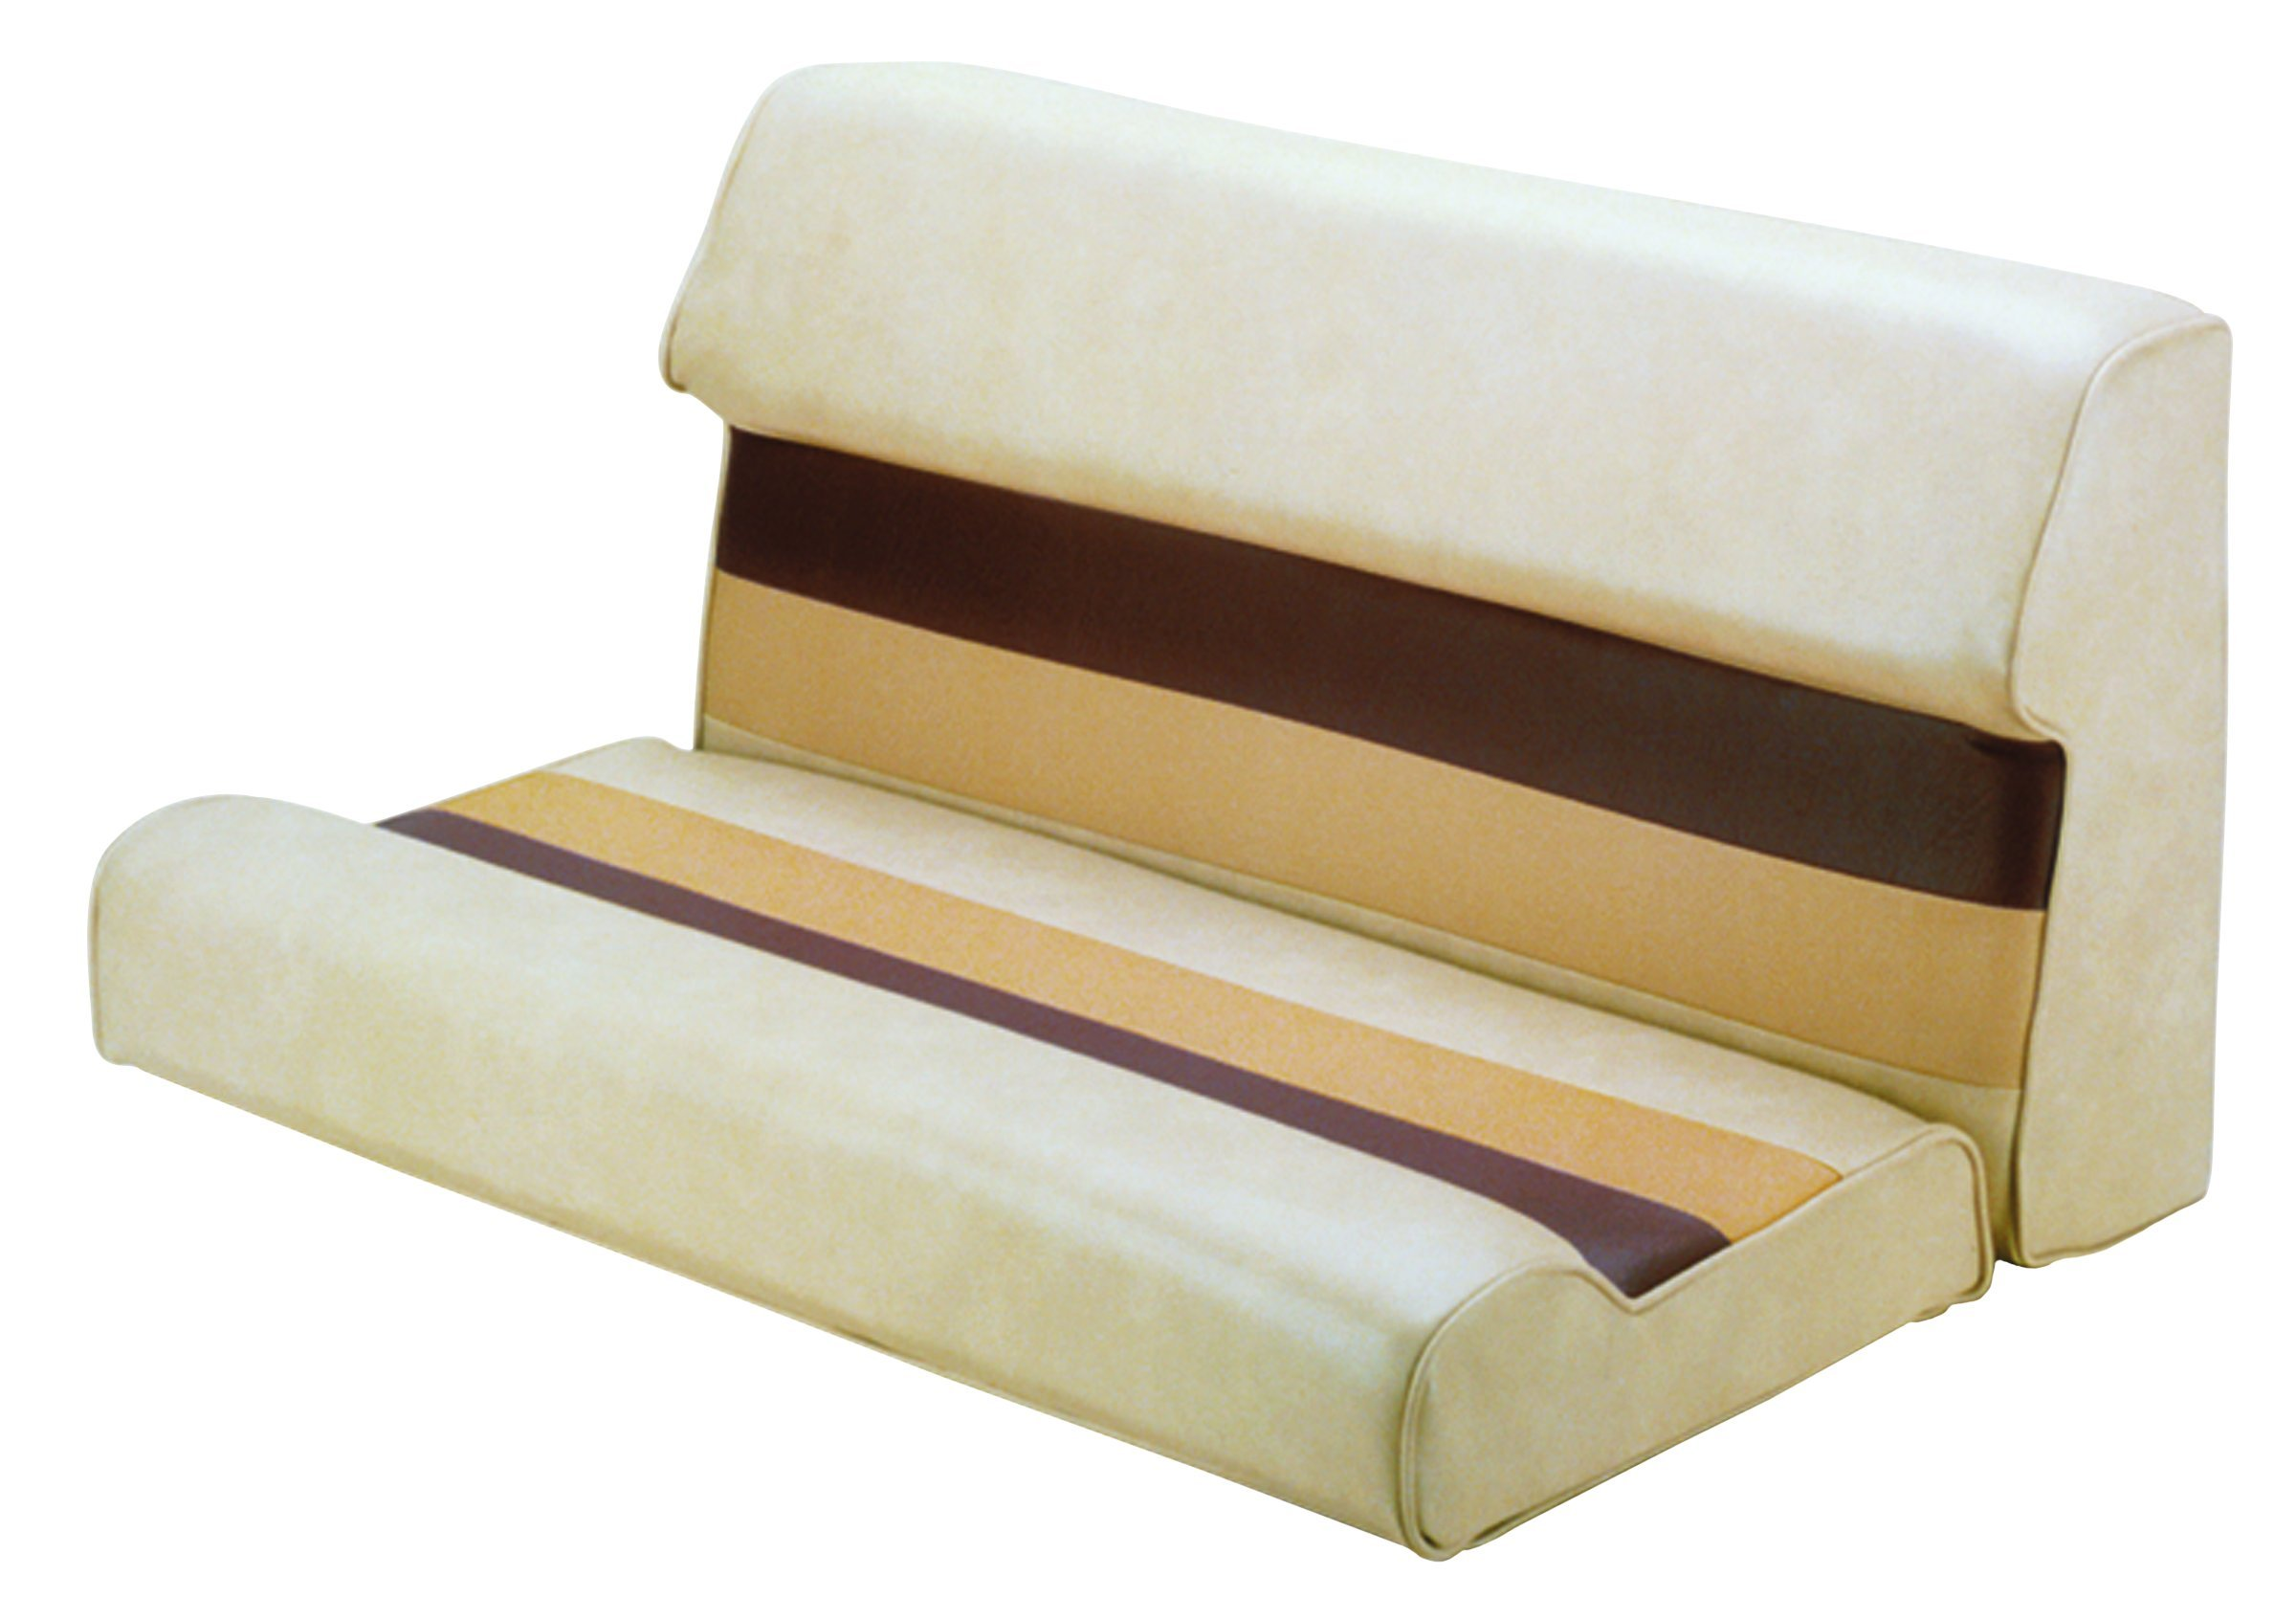 Wise 36-Inch Pontoon Bench Seat Cushion (Base Required to Complete), Sand-Chestnut-Gold